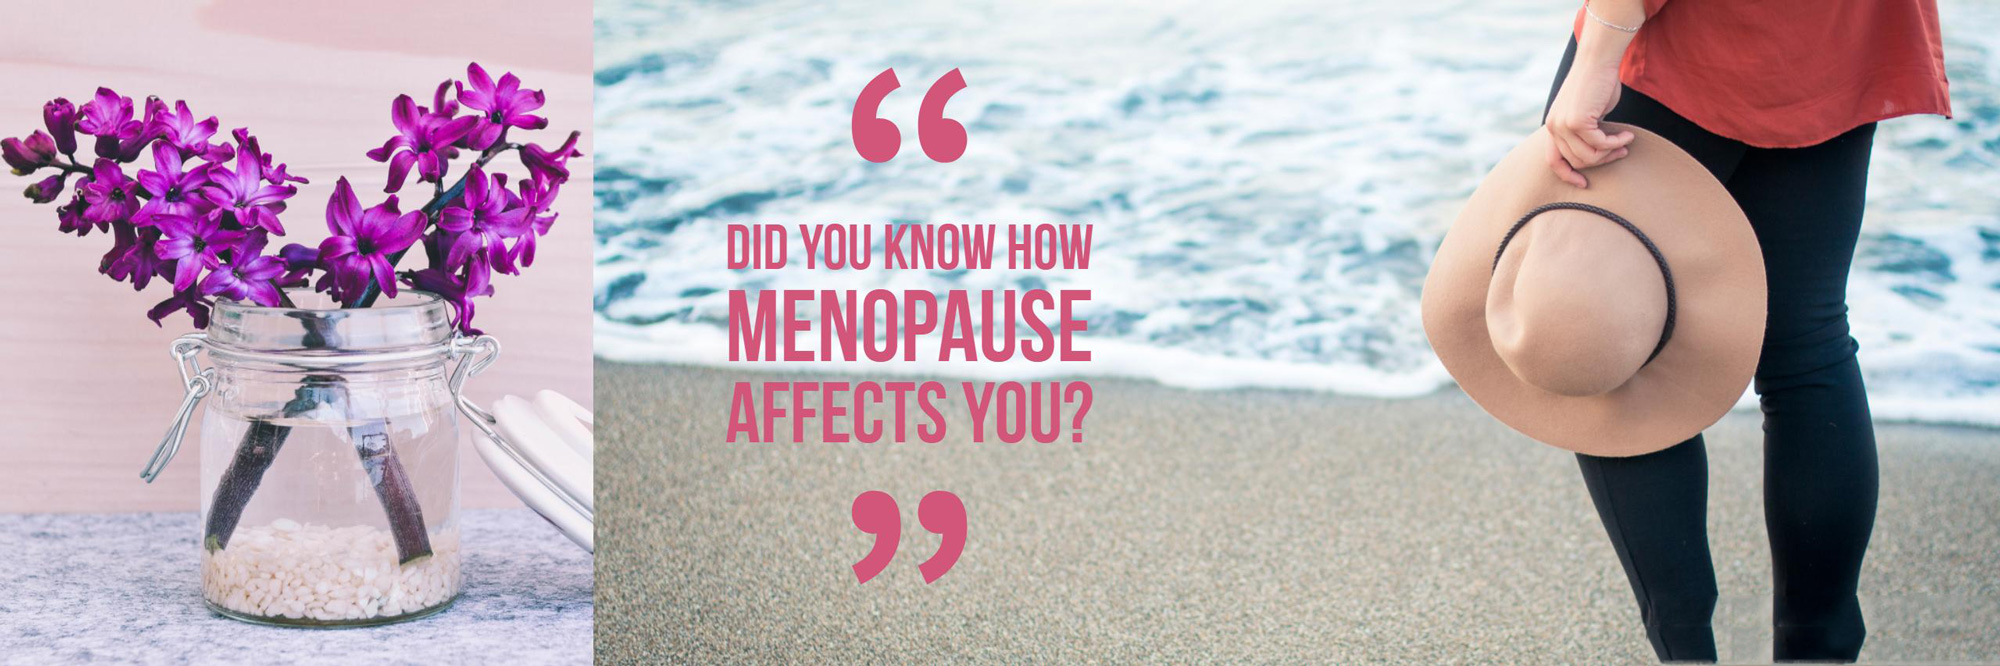 Get to Know Menopause